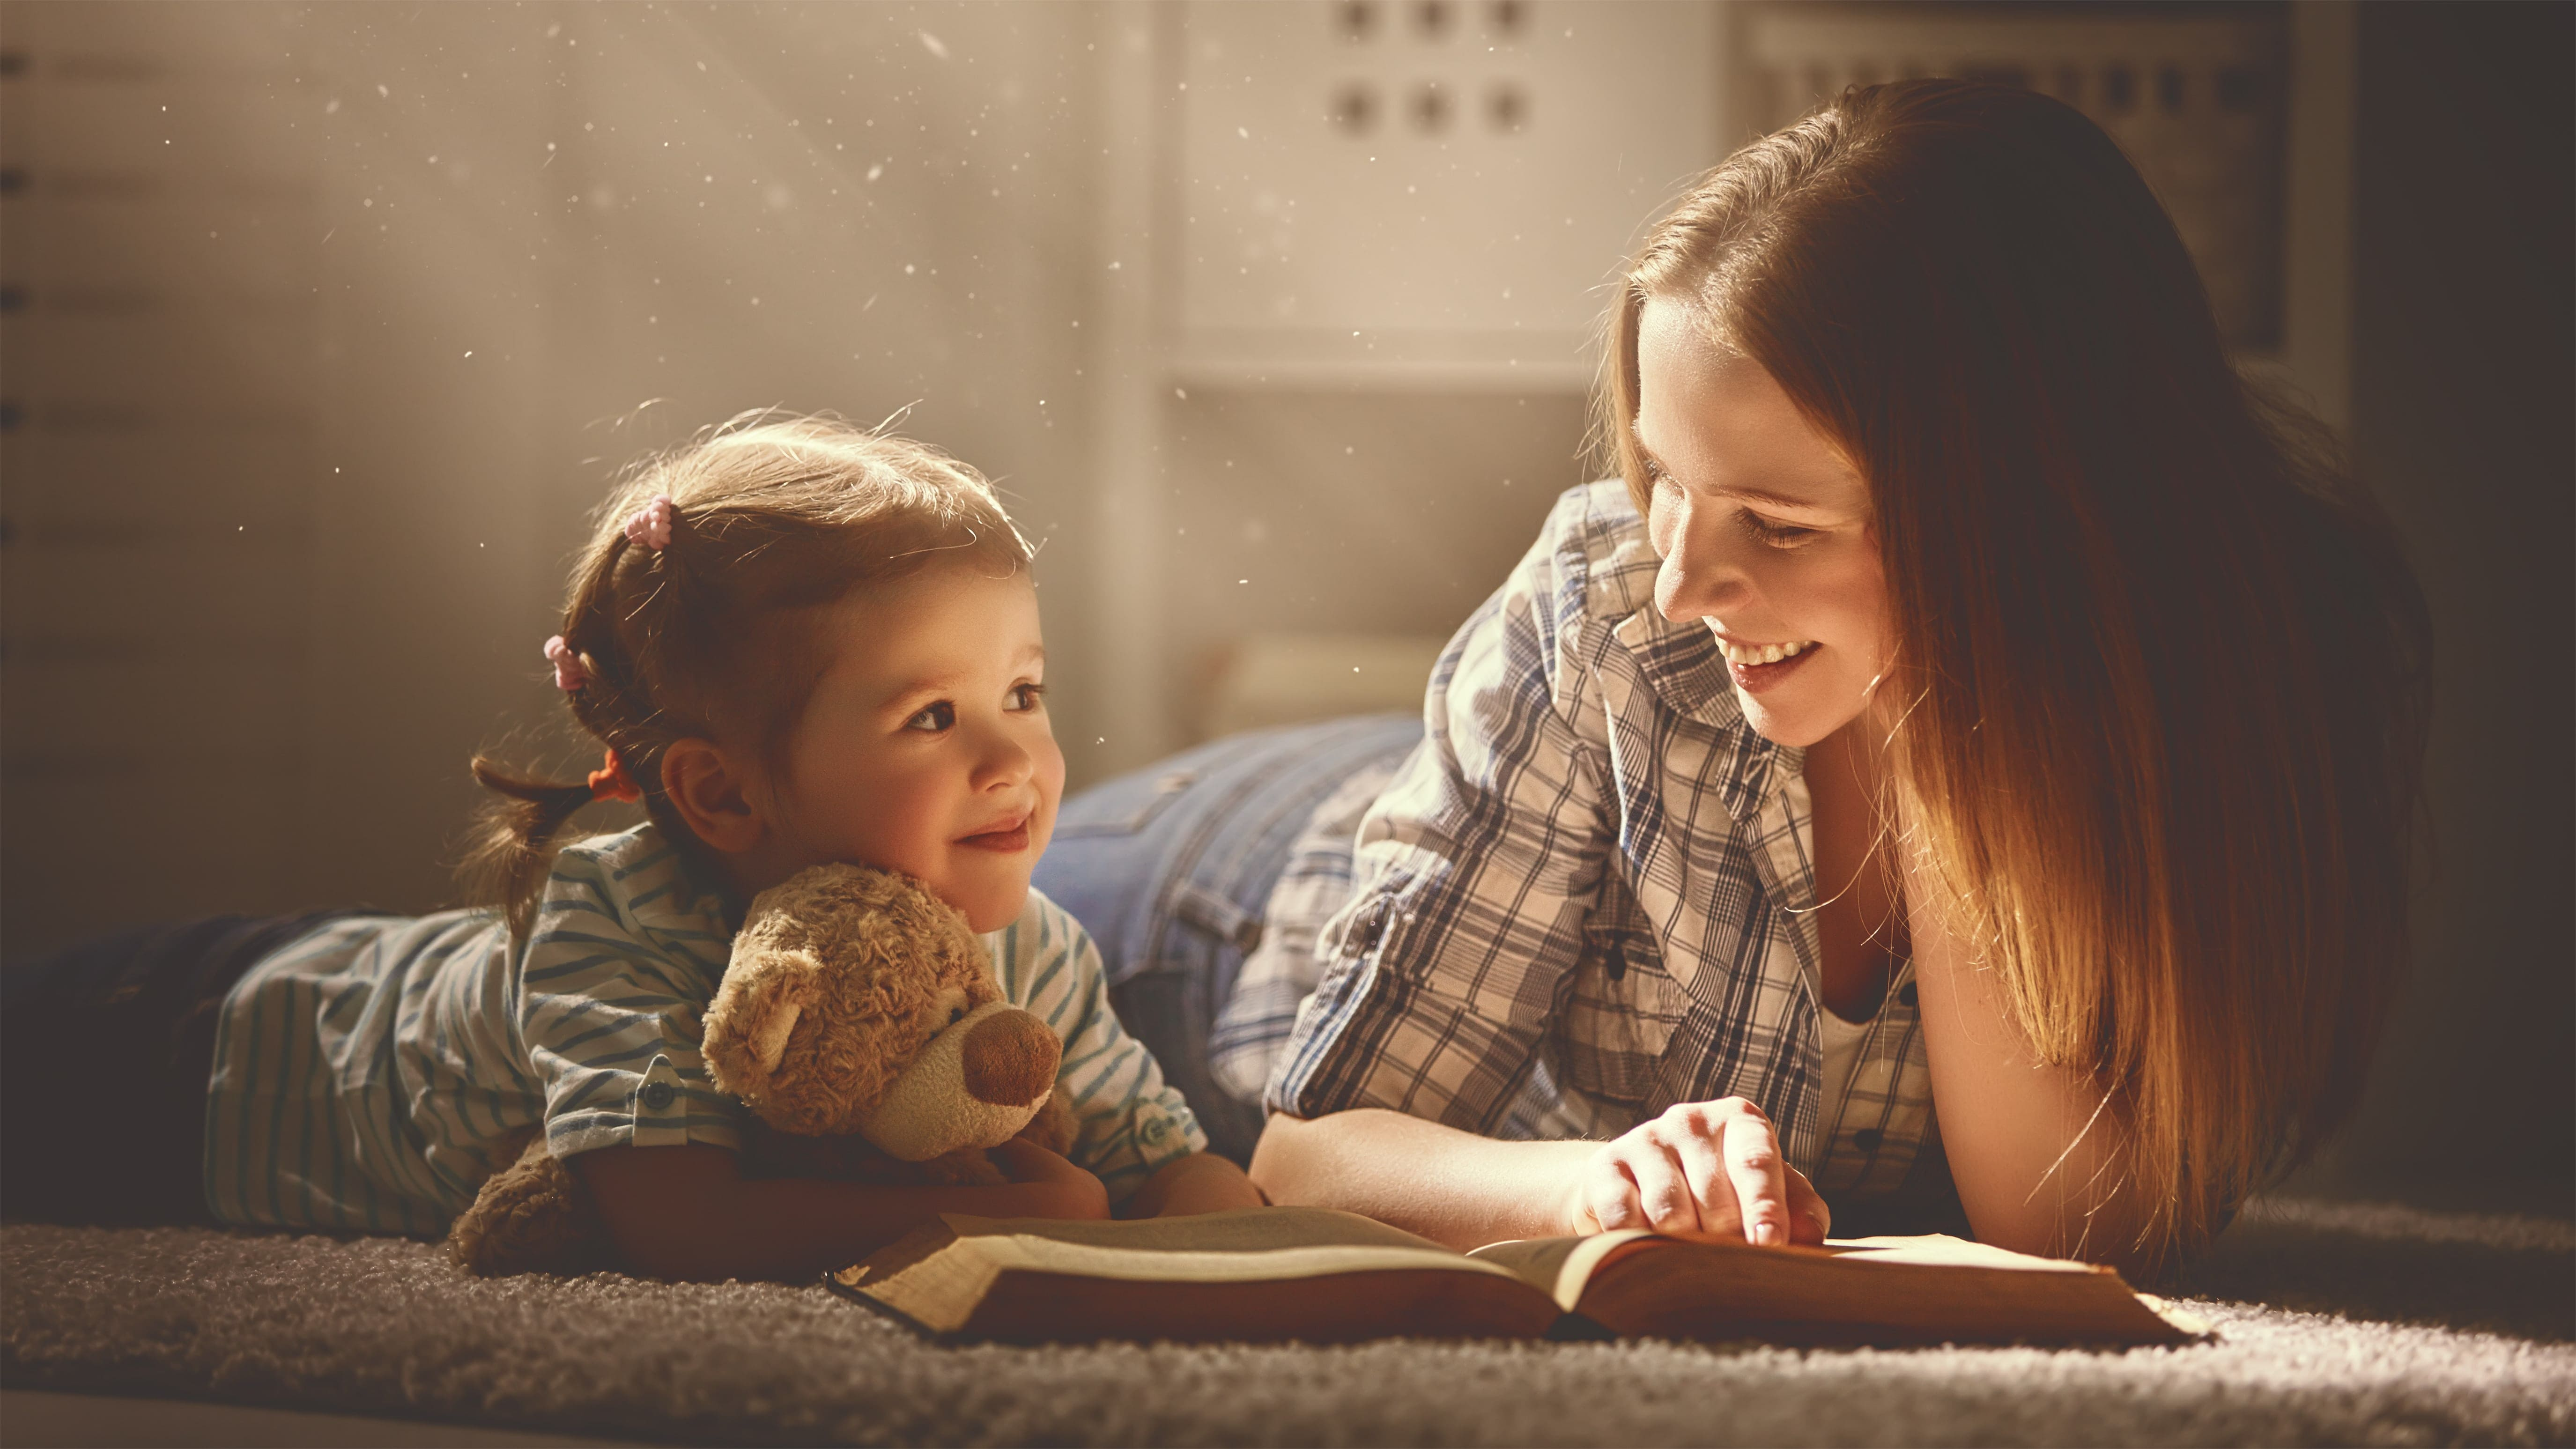 parent with custody reading a book together with her child